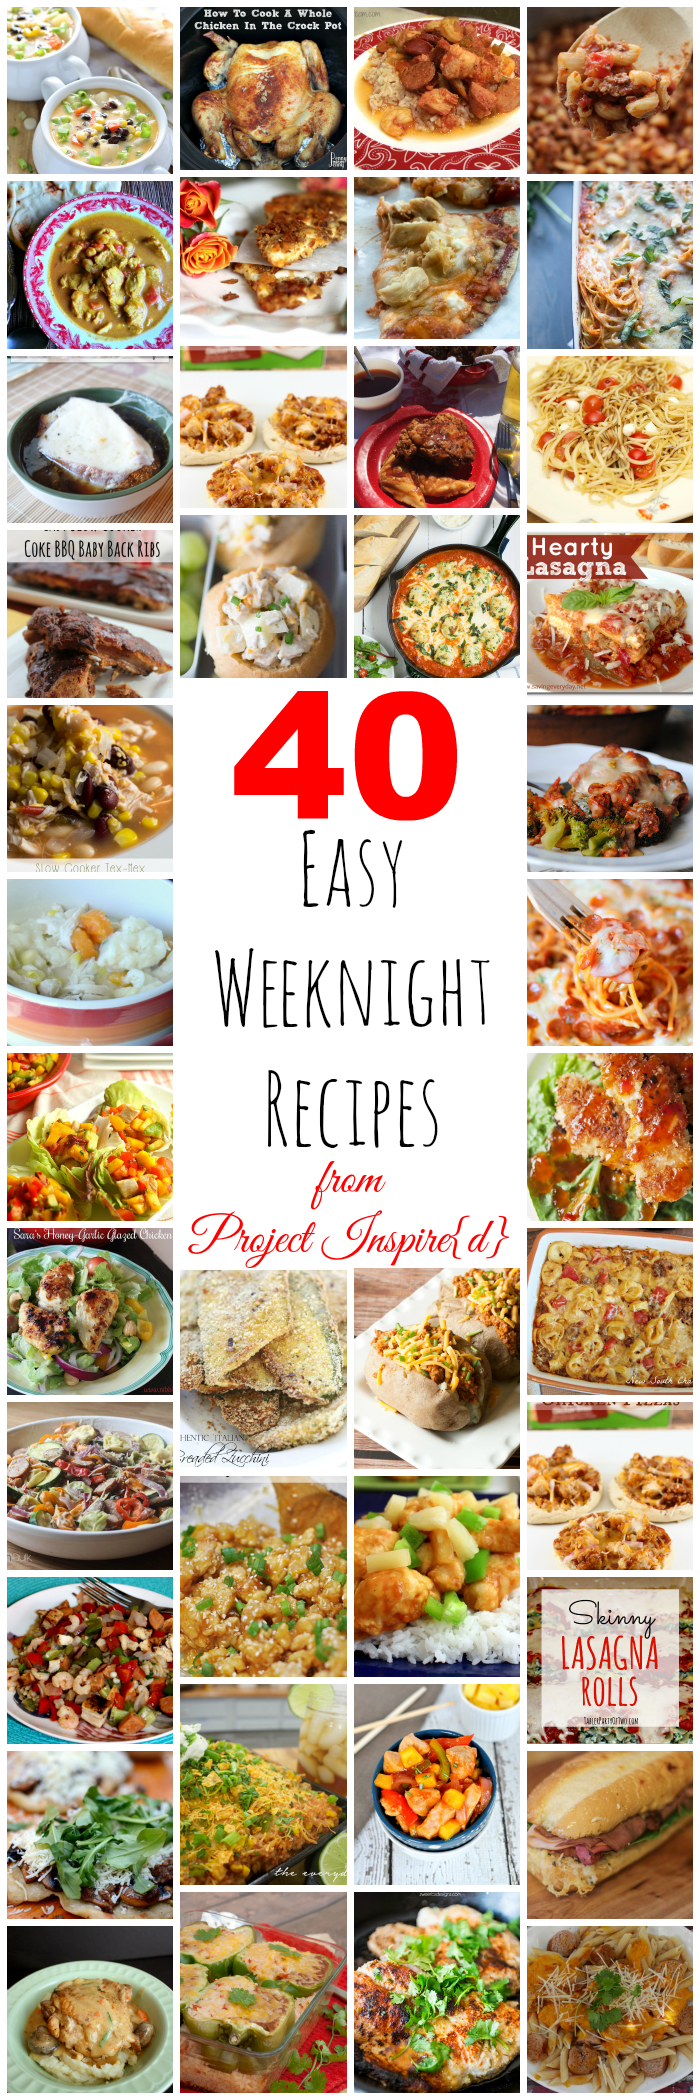 40 Easy Weeknight Meals